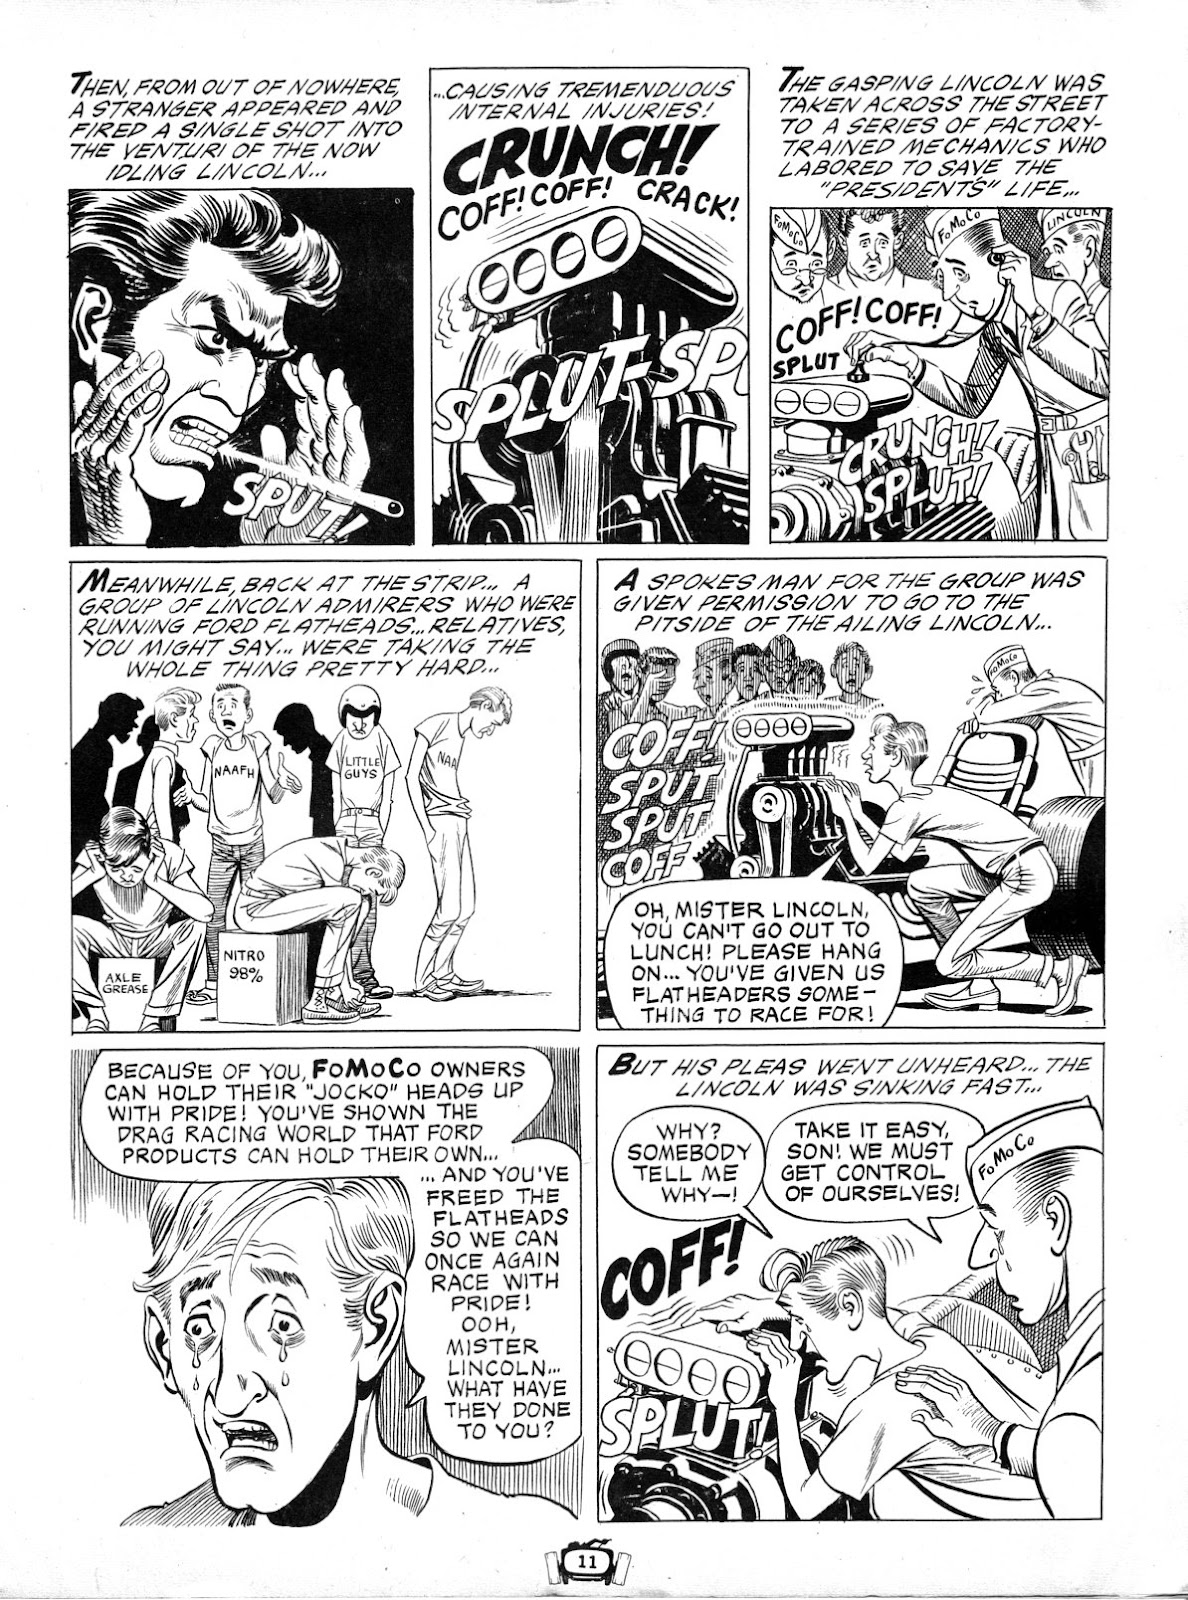 Drag Cartoons issue 7 - Page 11